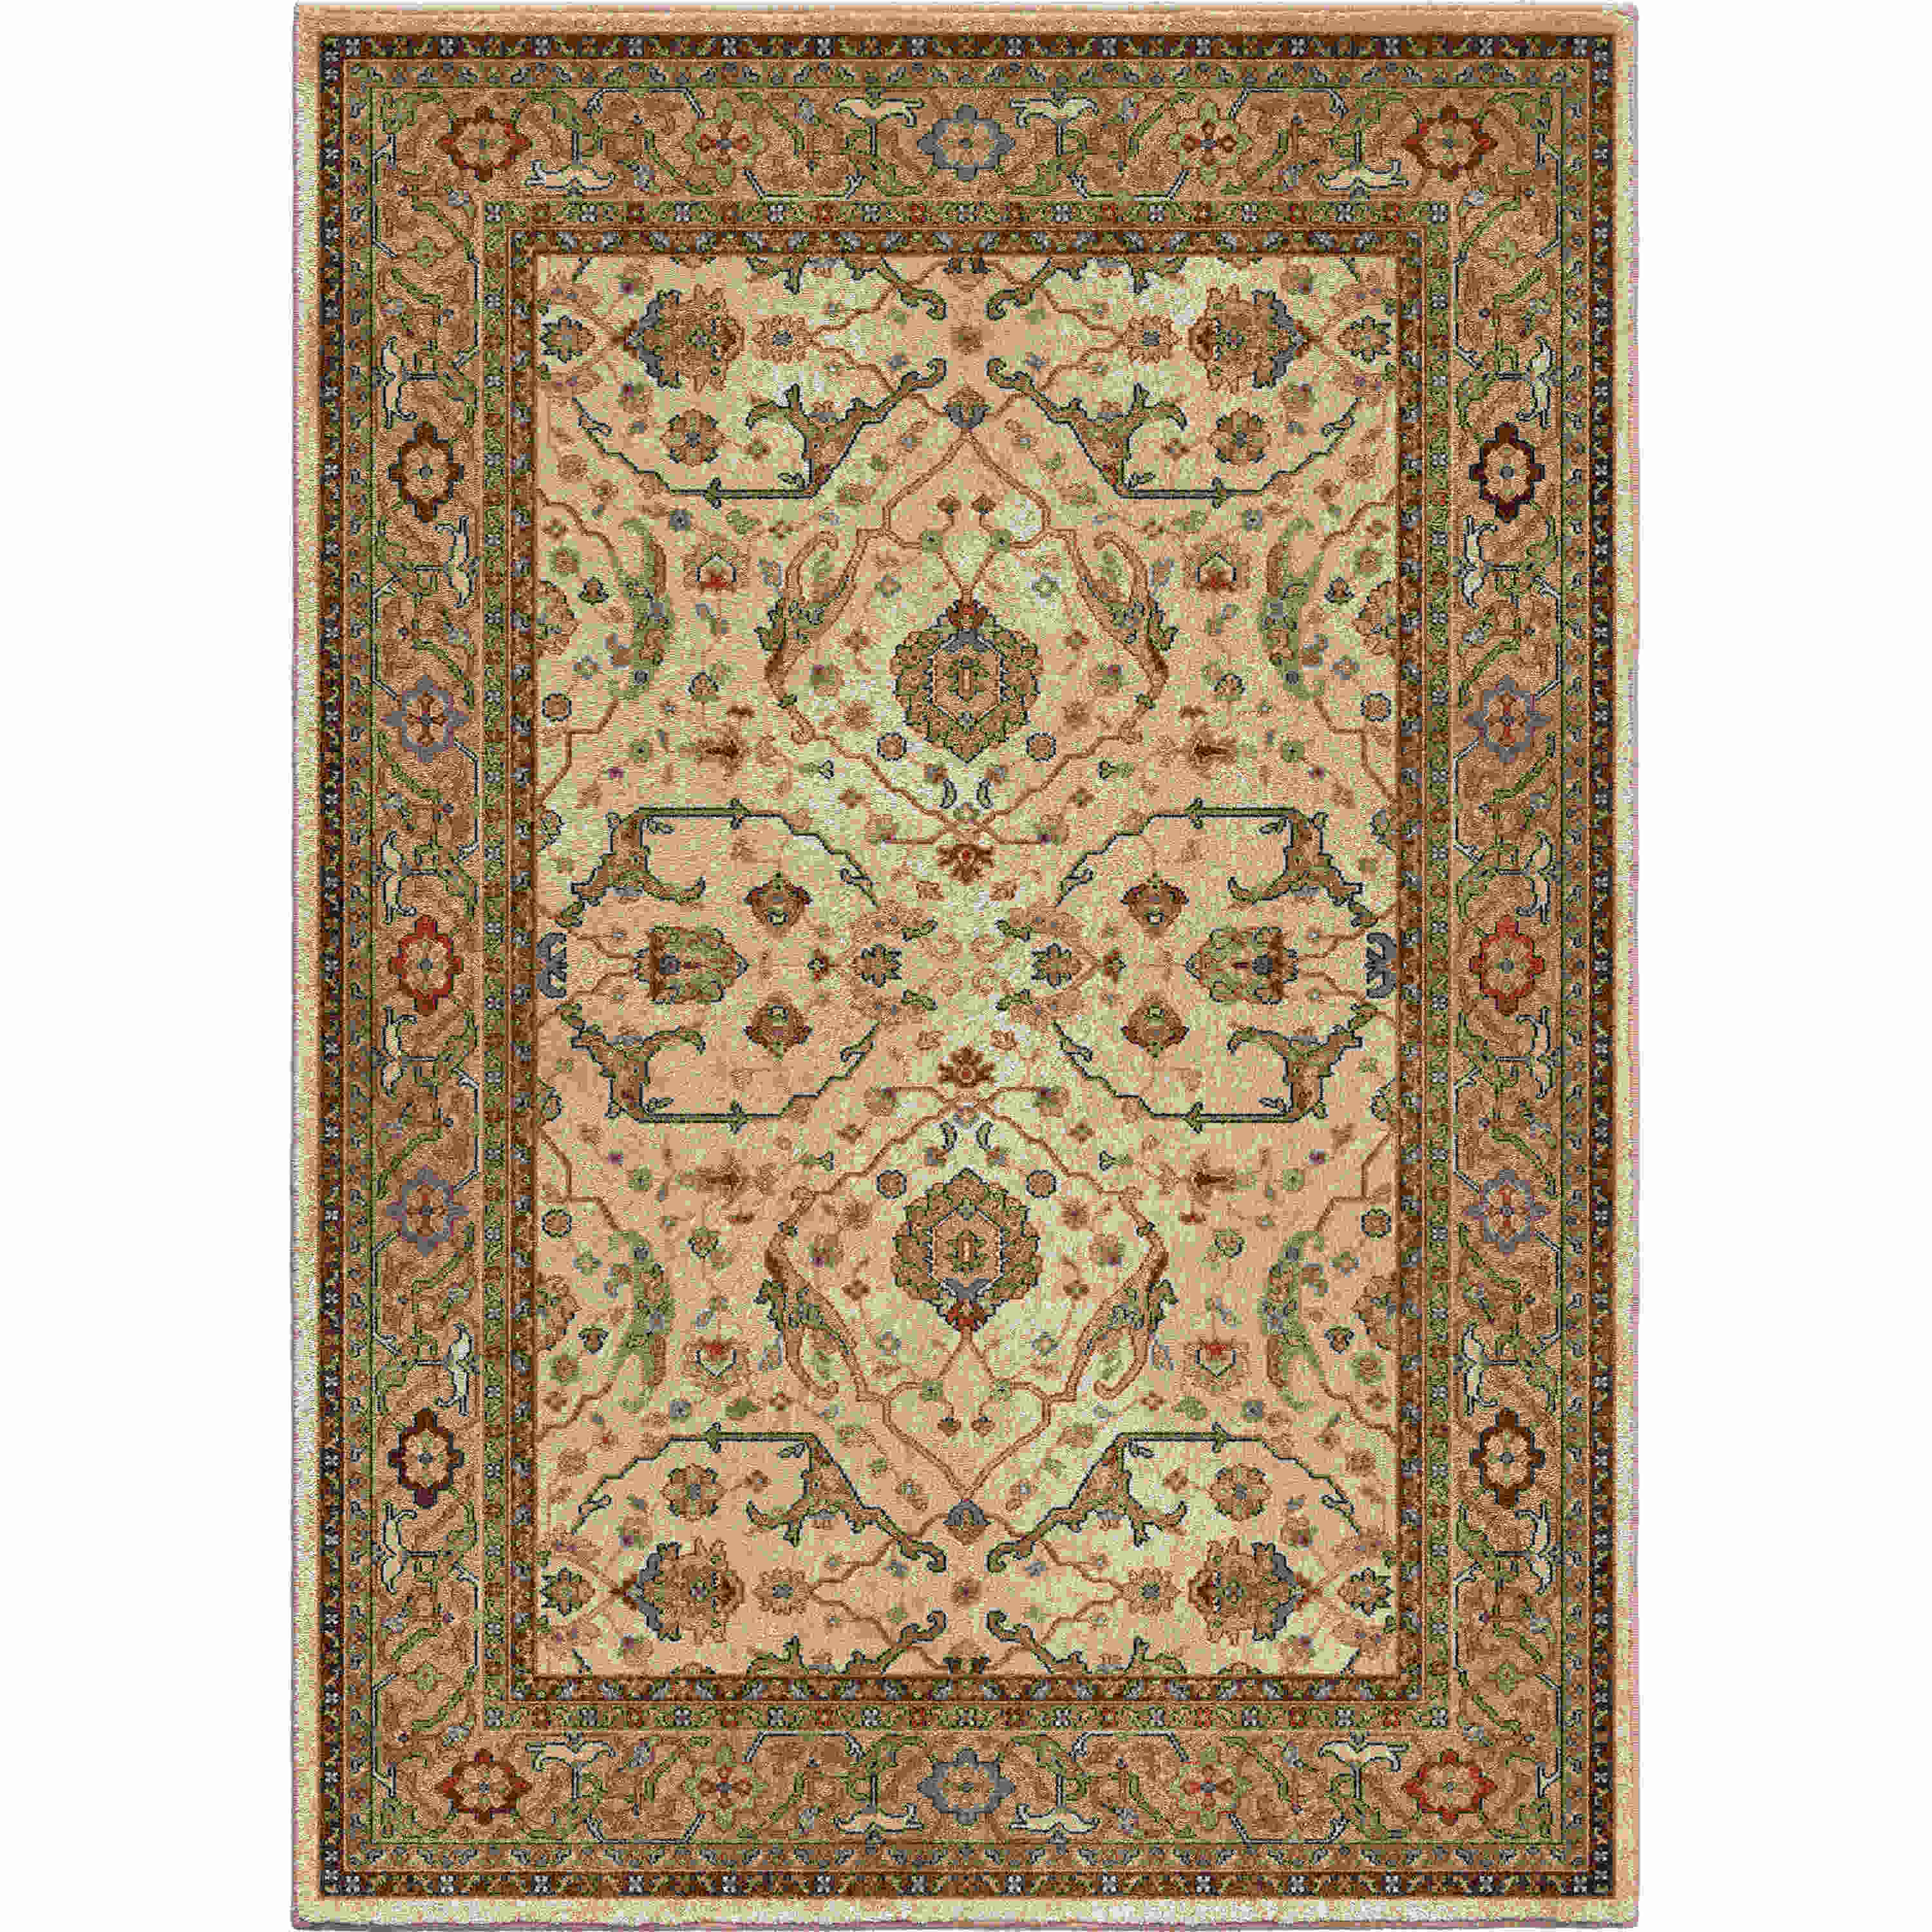 Orian Rugs Insanely Soft Floral Gambrell Beige Area Rug 7'10 X 10'10